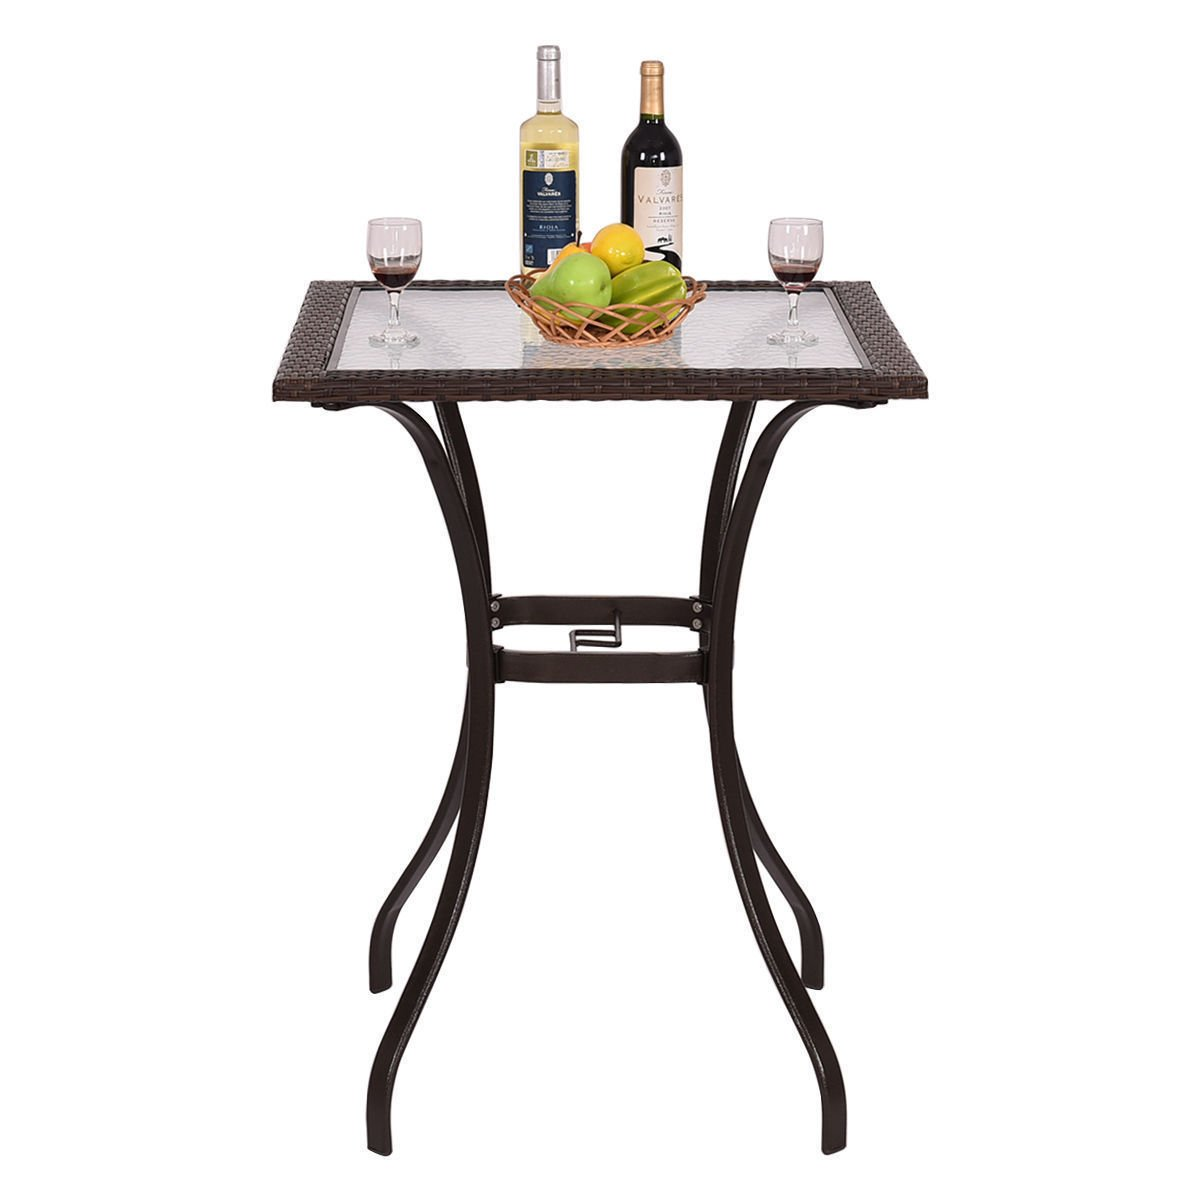 GoodGoods LLC Bar Square Table Glass Modern and Useful Outdoor Patio Rattan Wicker Top Yard Garden Furniture New by GoodGoods LLC (Image #3)